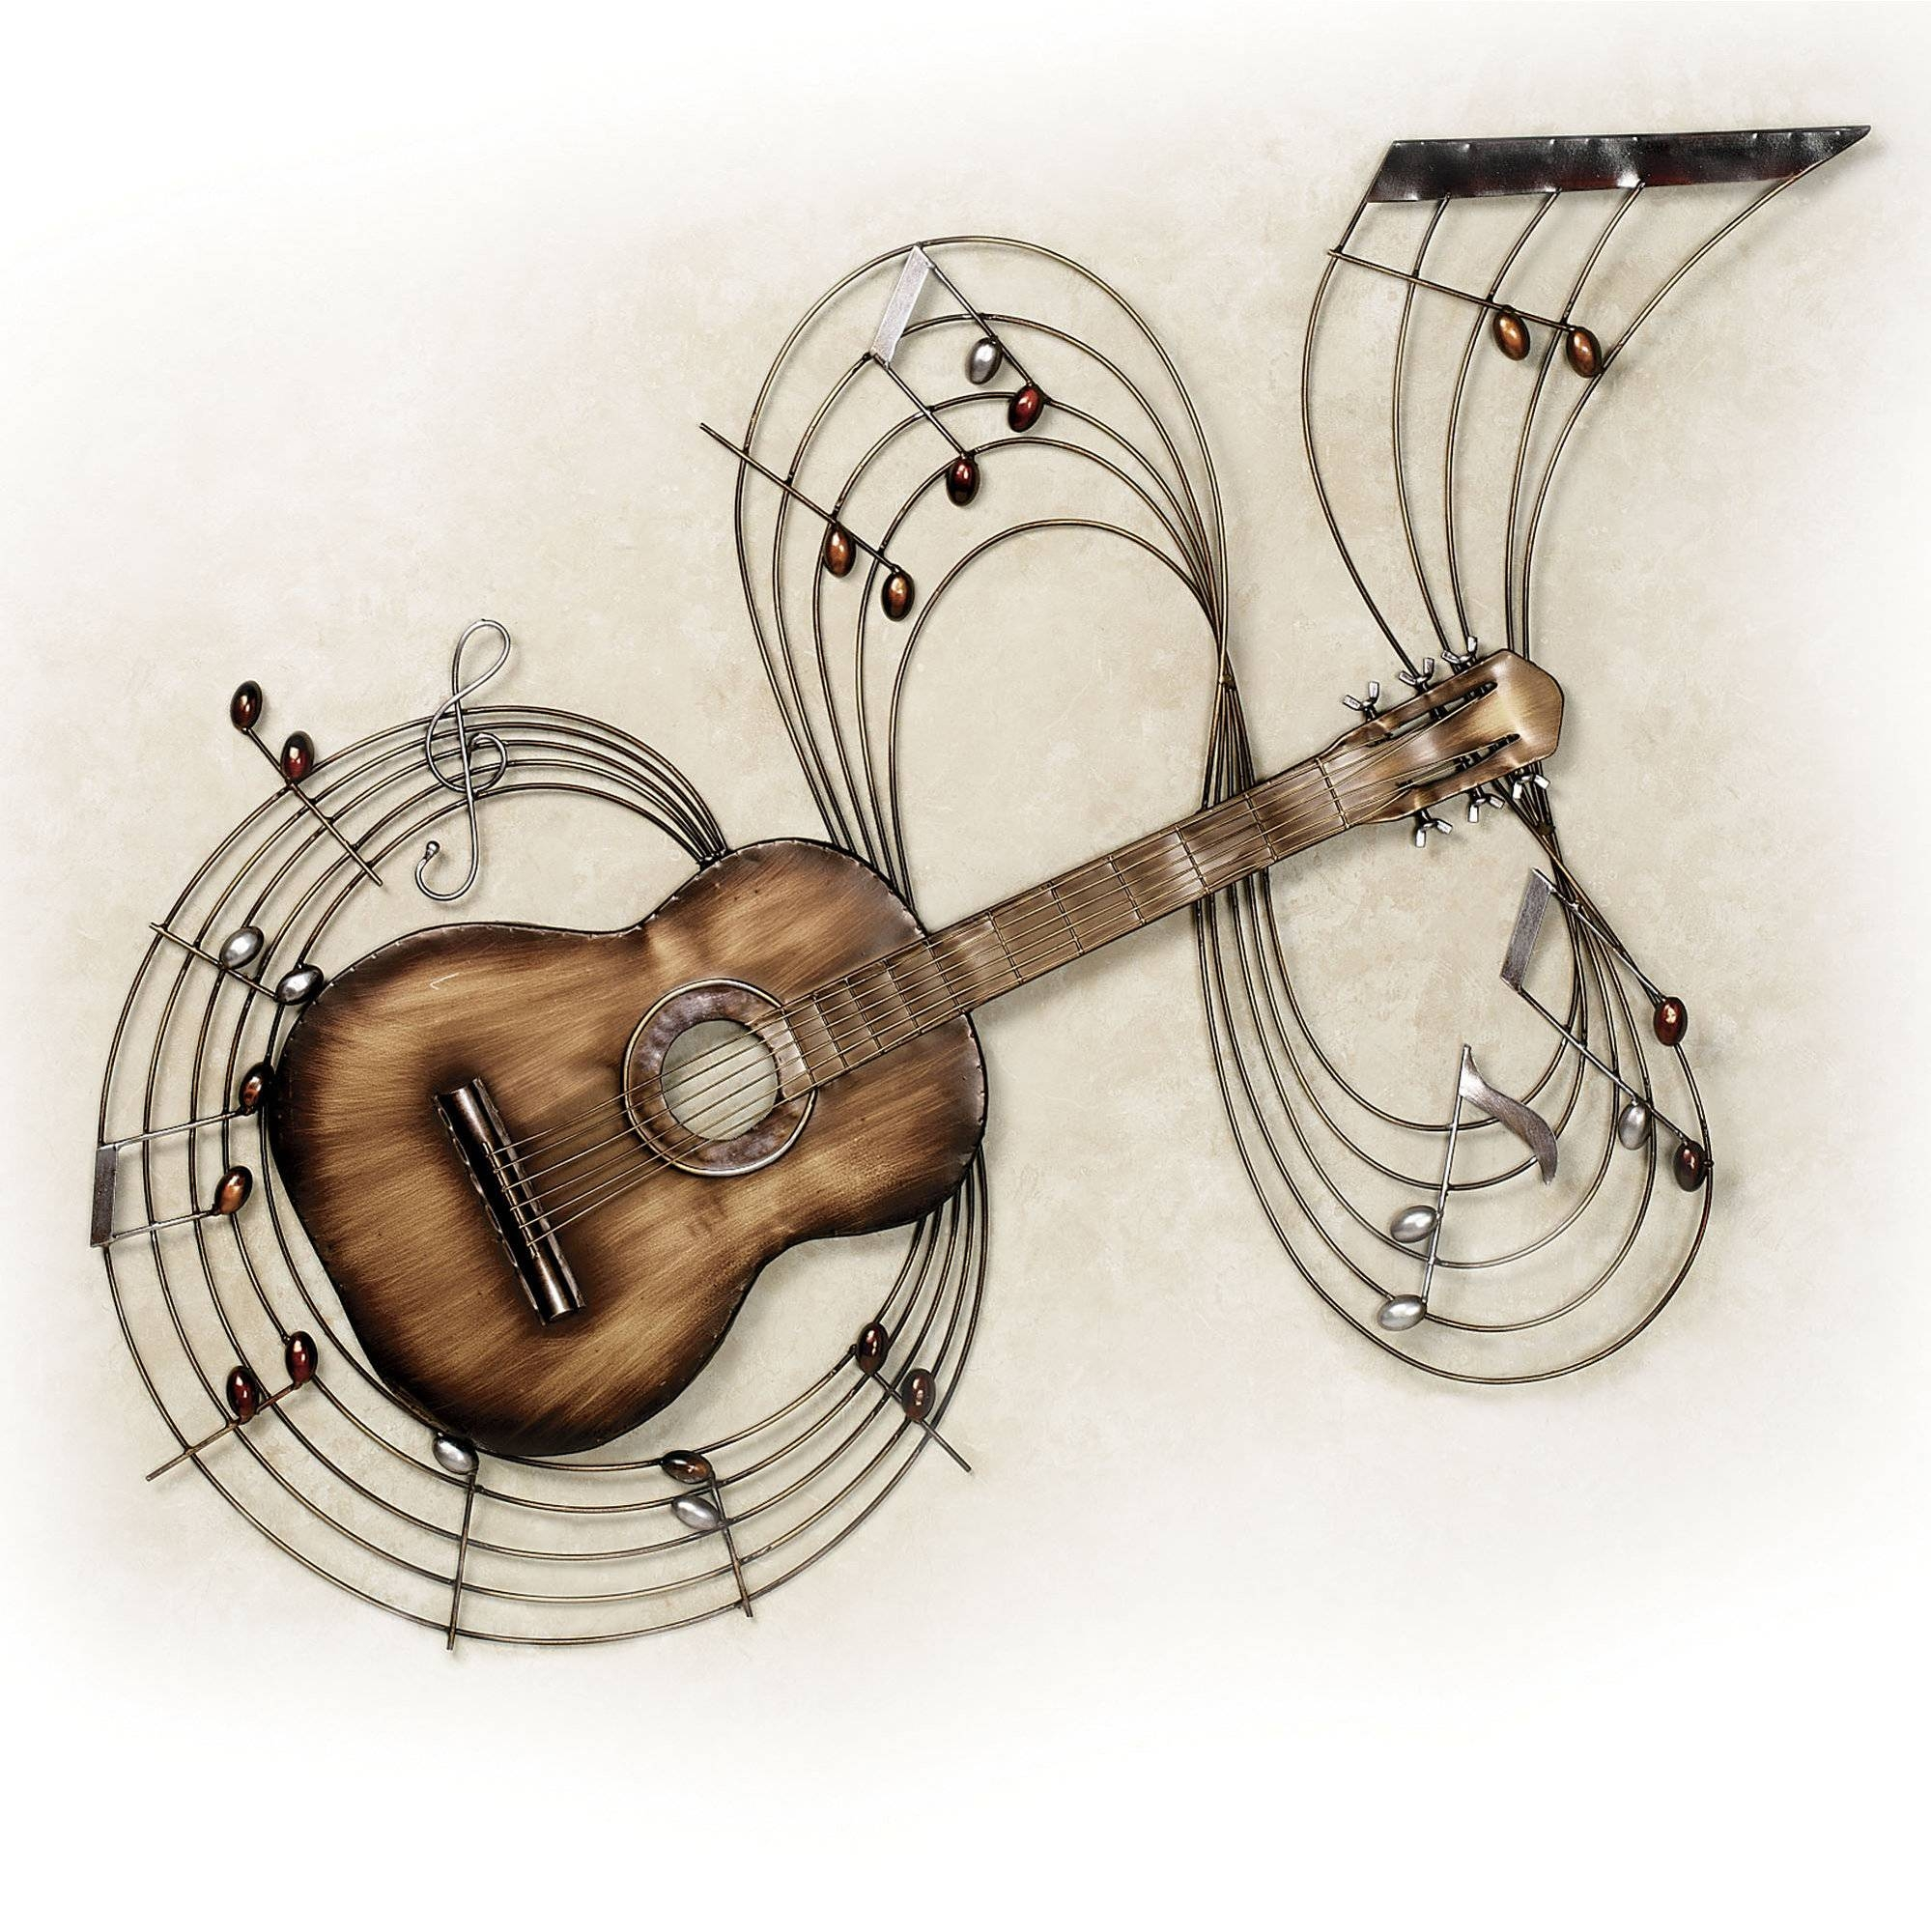 Wall Art Design Ideas: Guitar Unique Music Wall Art Metal Design Intended For Most Recent Unique Metal Wall Art (View 16 of 20)